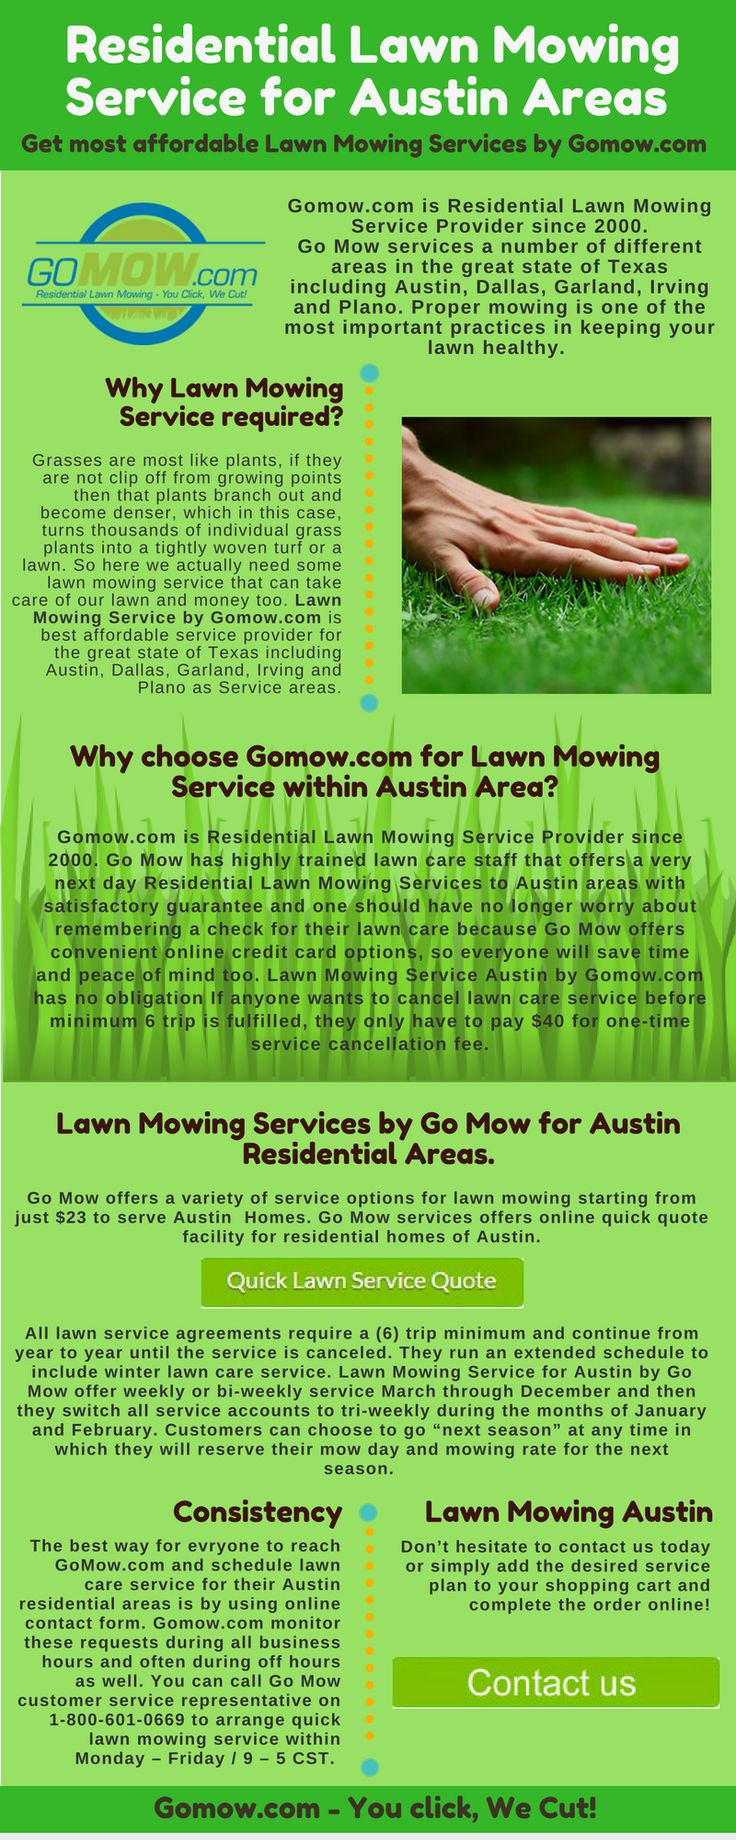 Reliable lawn care and mowing services at competitive prices - Gomow Com Is Residential Lawn Mowing Service Provider Since 2000 Go Mow Has Highly